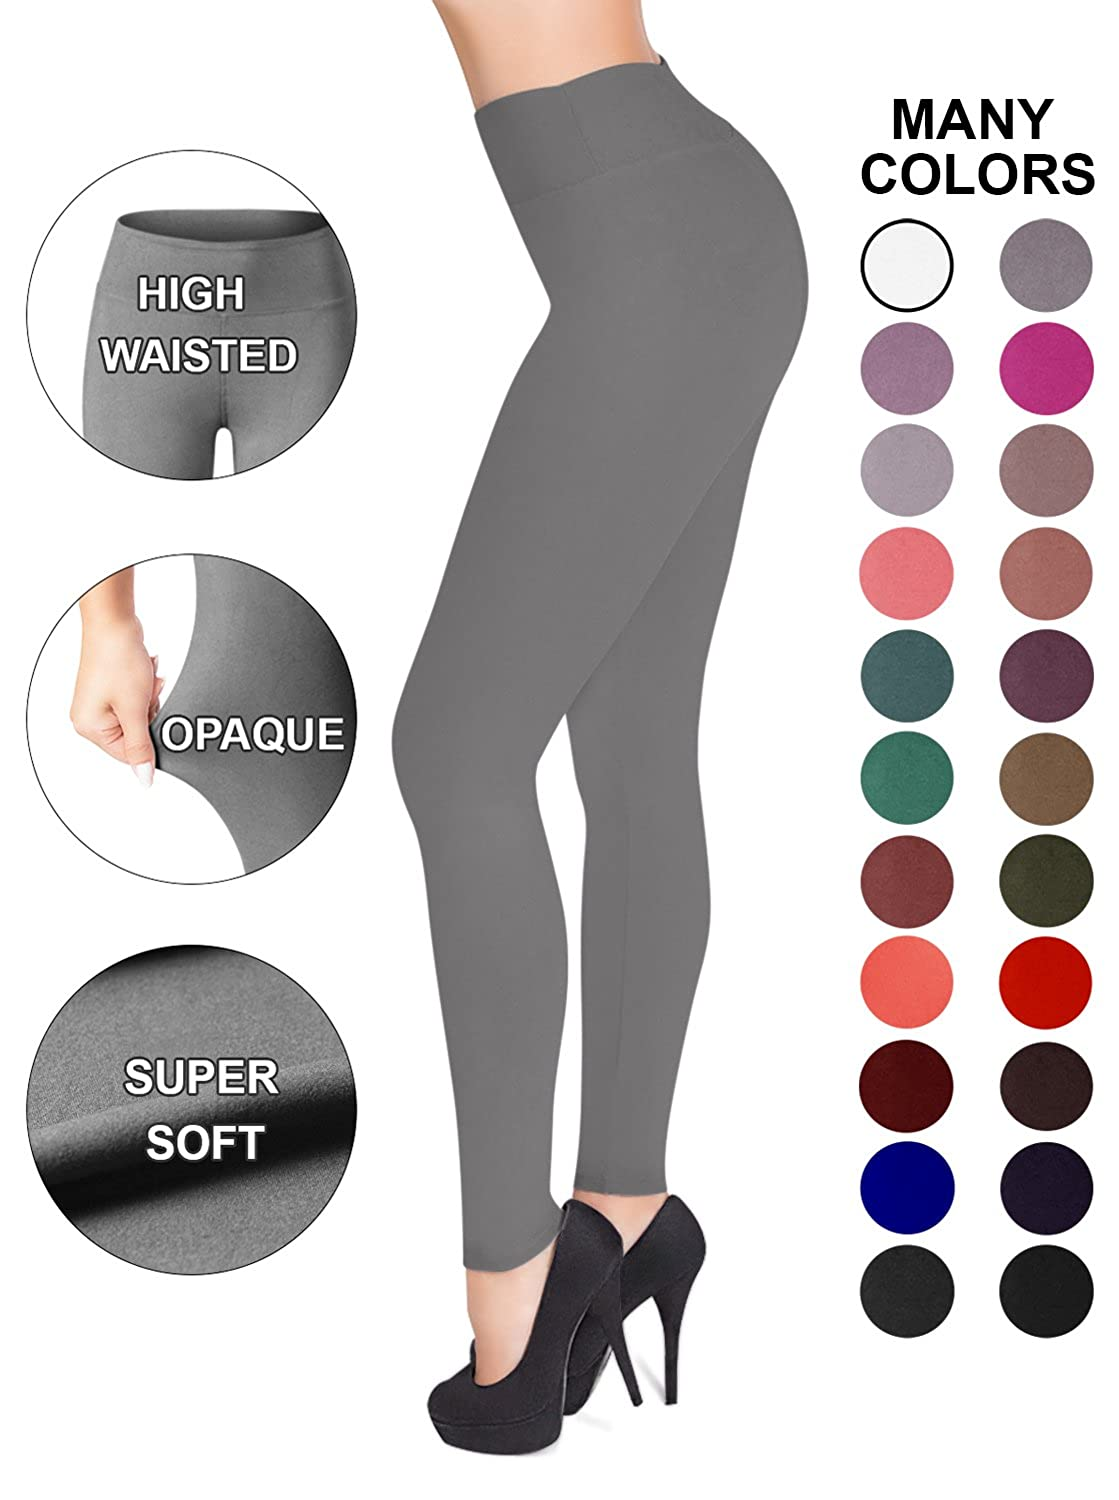 Sejora Satina High Waisted Leggings   25 Colors   Super Soft Full Length Opaque Slim by Sejora